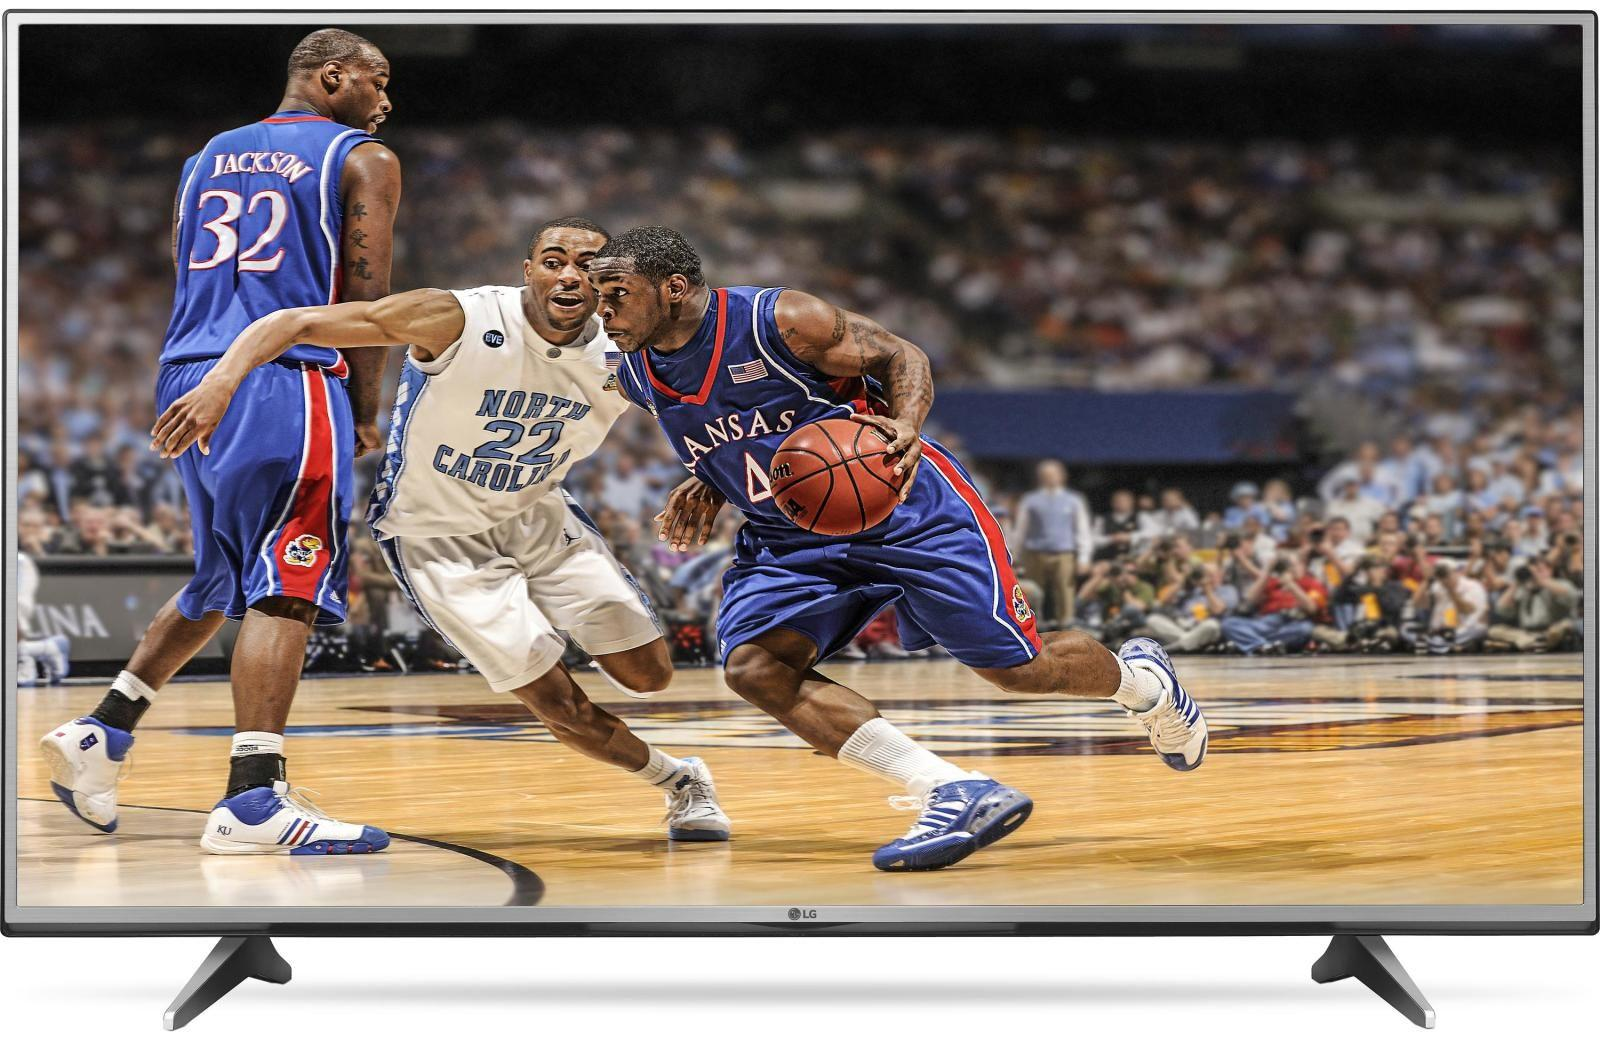 LG 65 4K UHD Smart TV Plus $200 Dell Gift